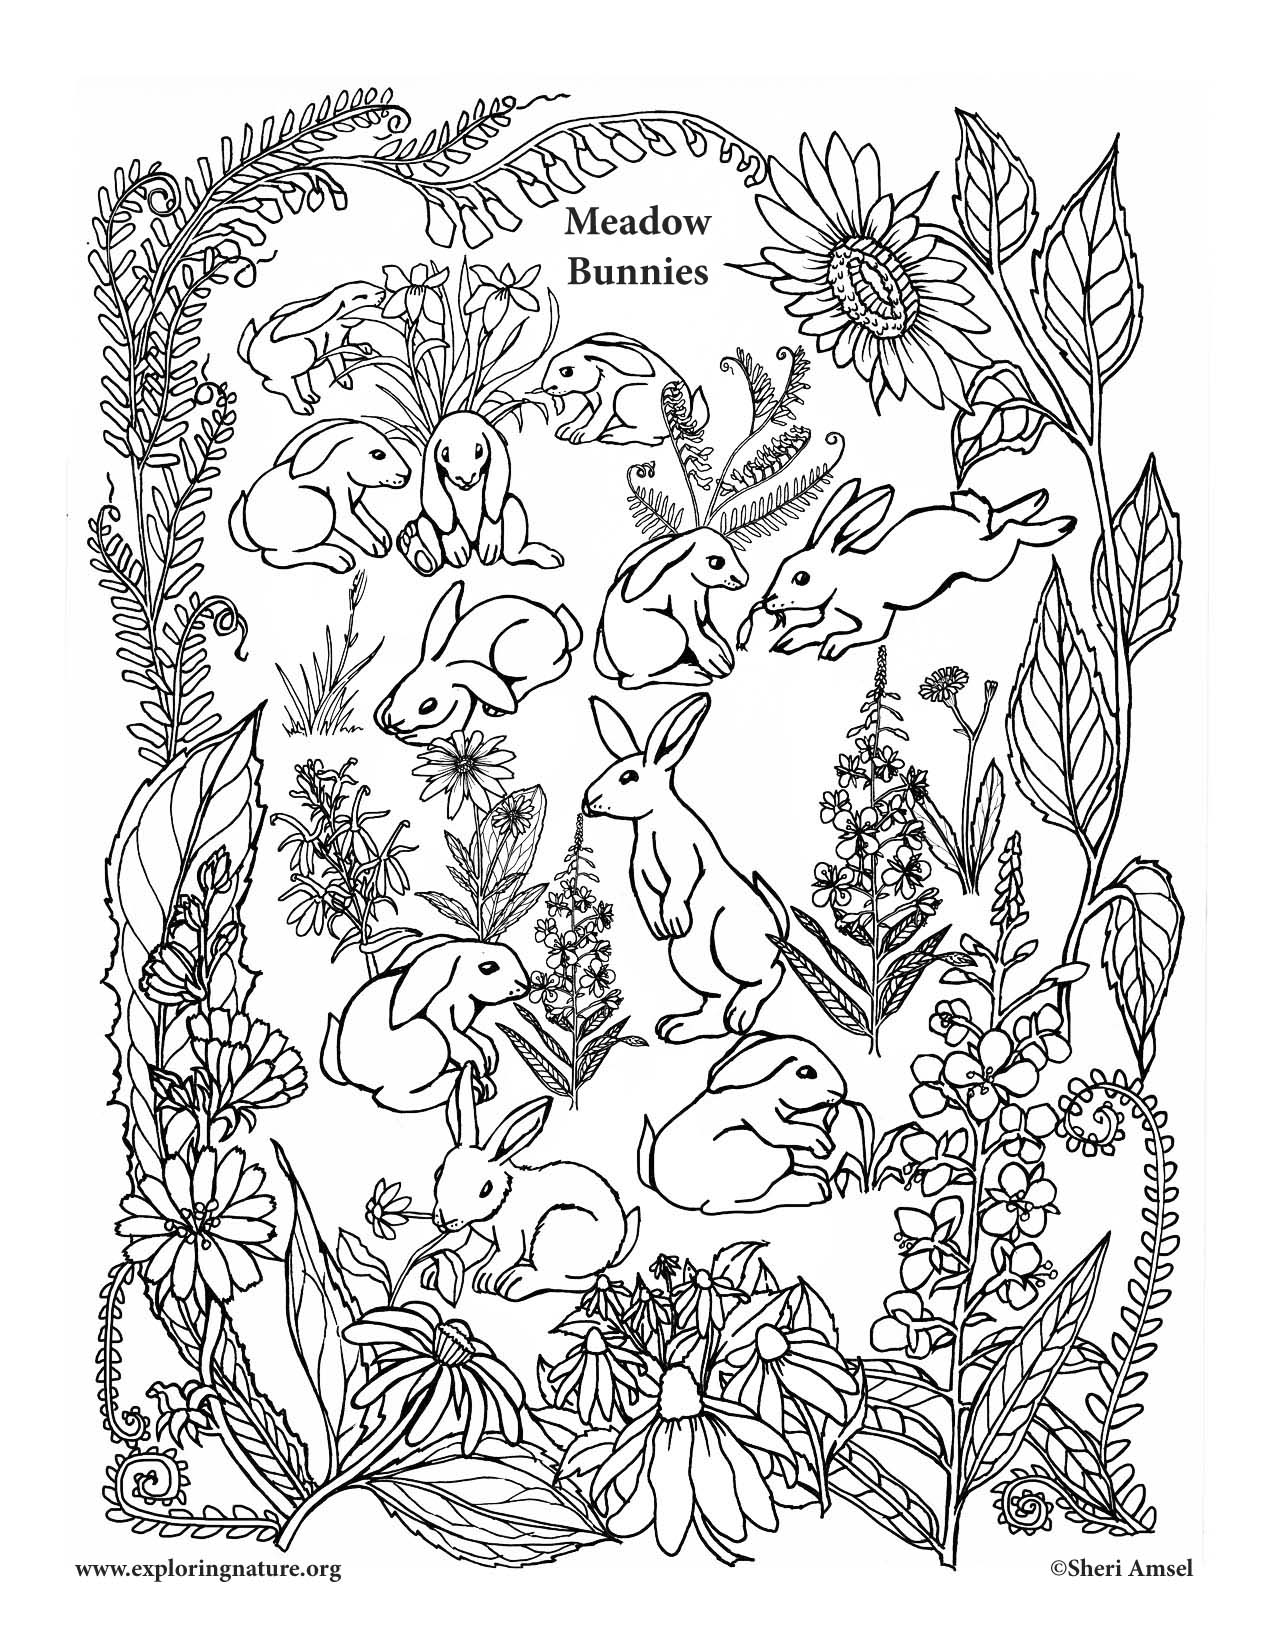 meadow animals coloring pages - photo#47